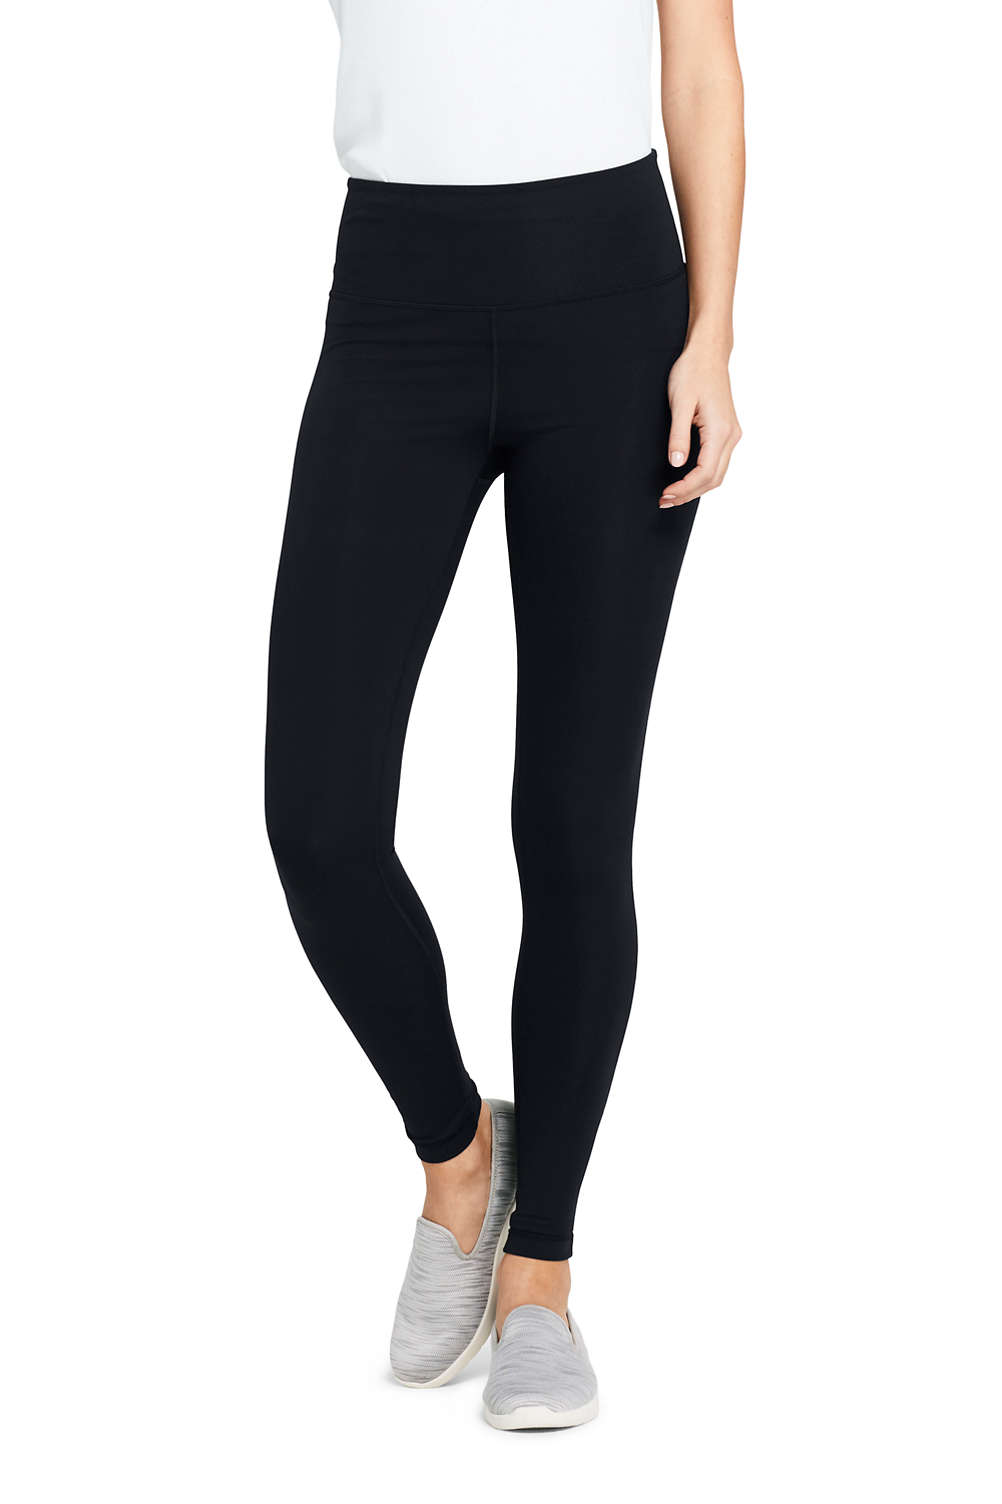 6b0c804a18 Women s Active High Waisted Yoga Leggings from Lands  End